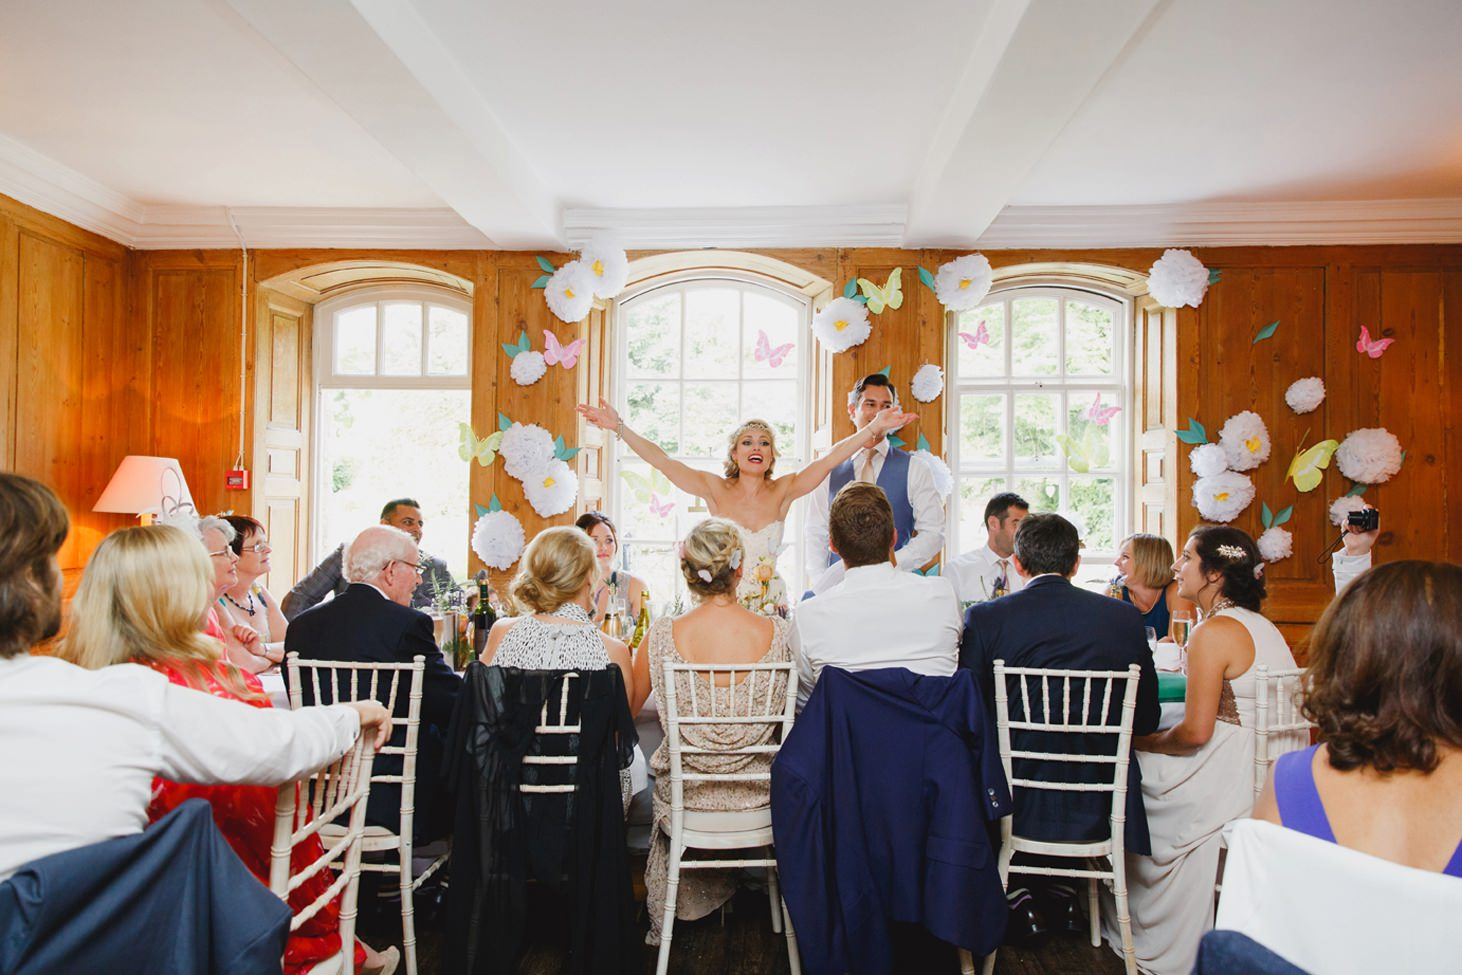 The Rectory Hotel Crudwell bride and groom speech